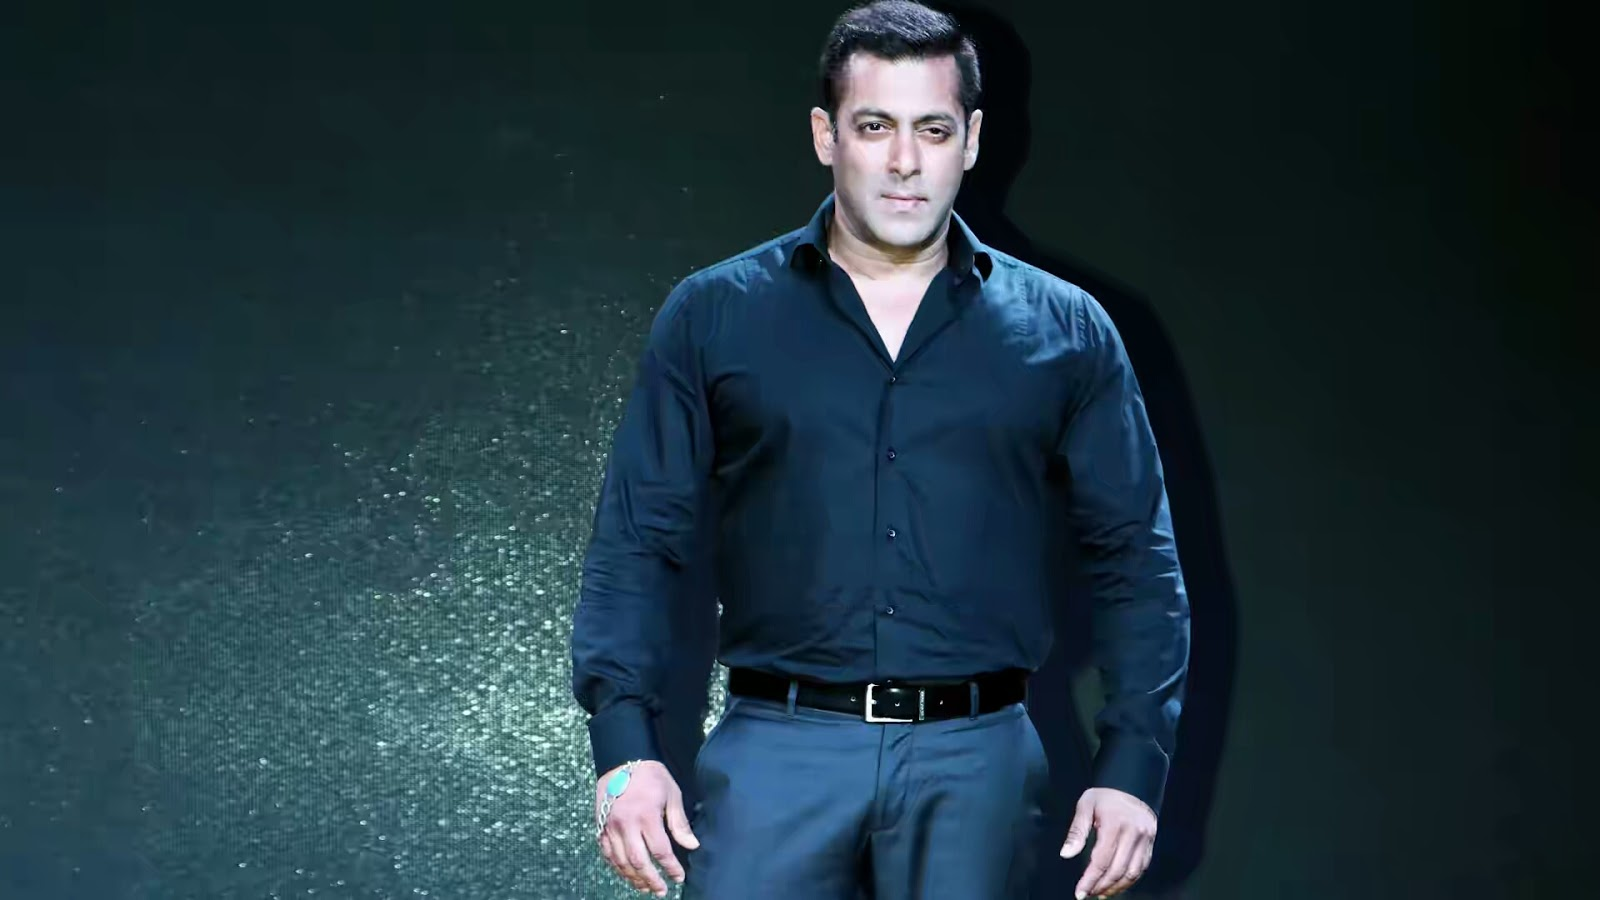 salman khan bigg boss 9 hd wallpaper